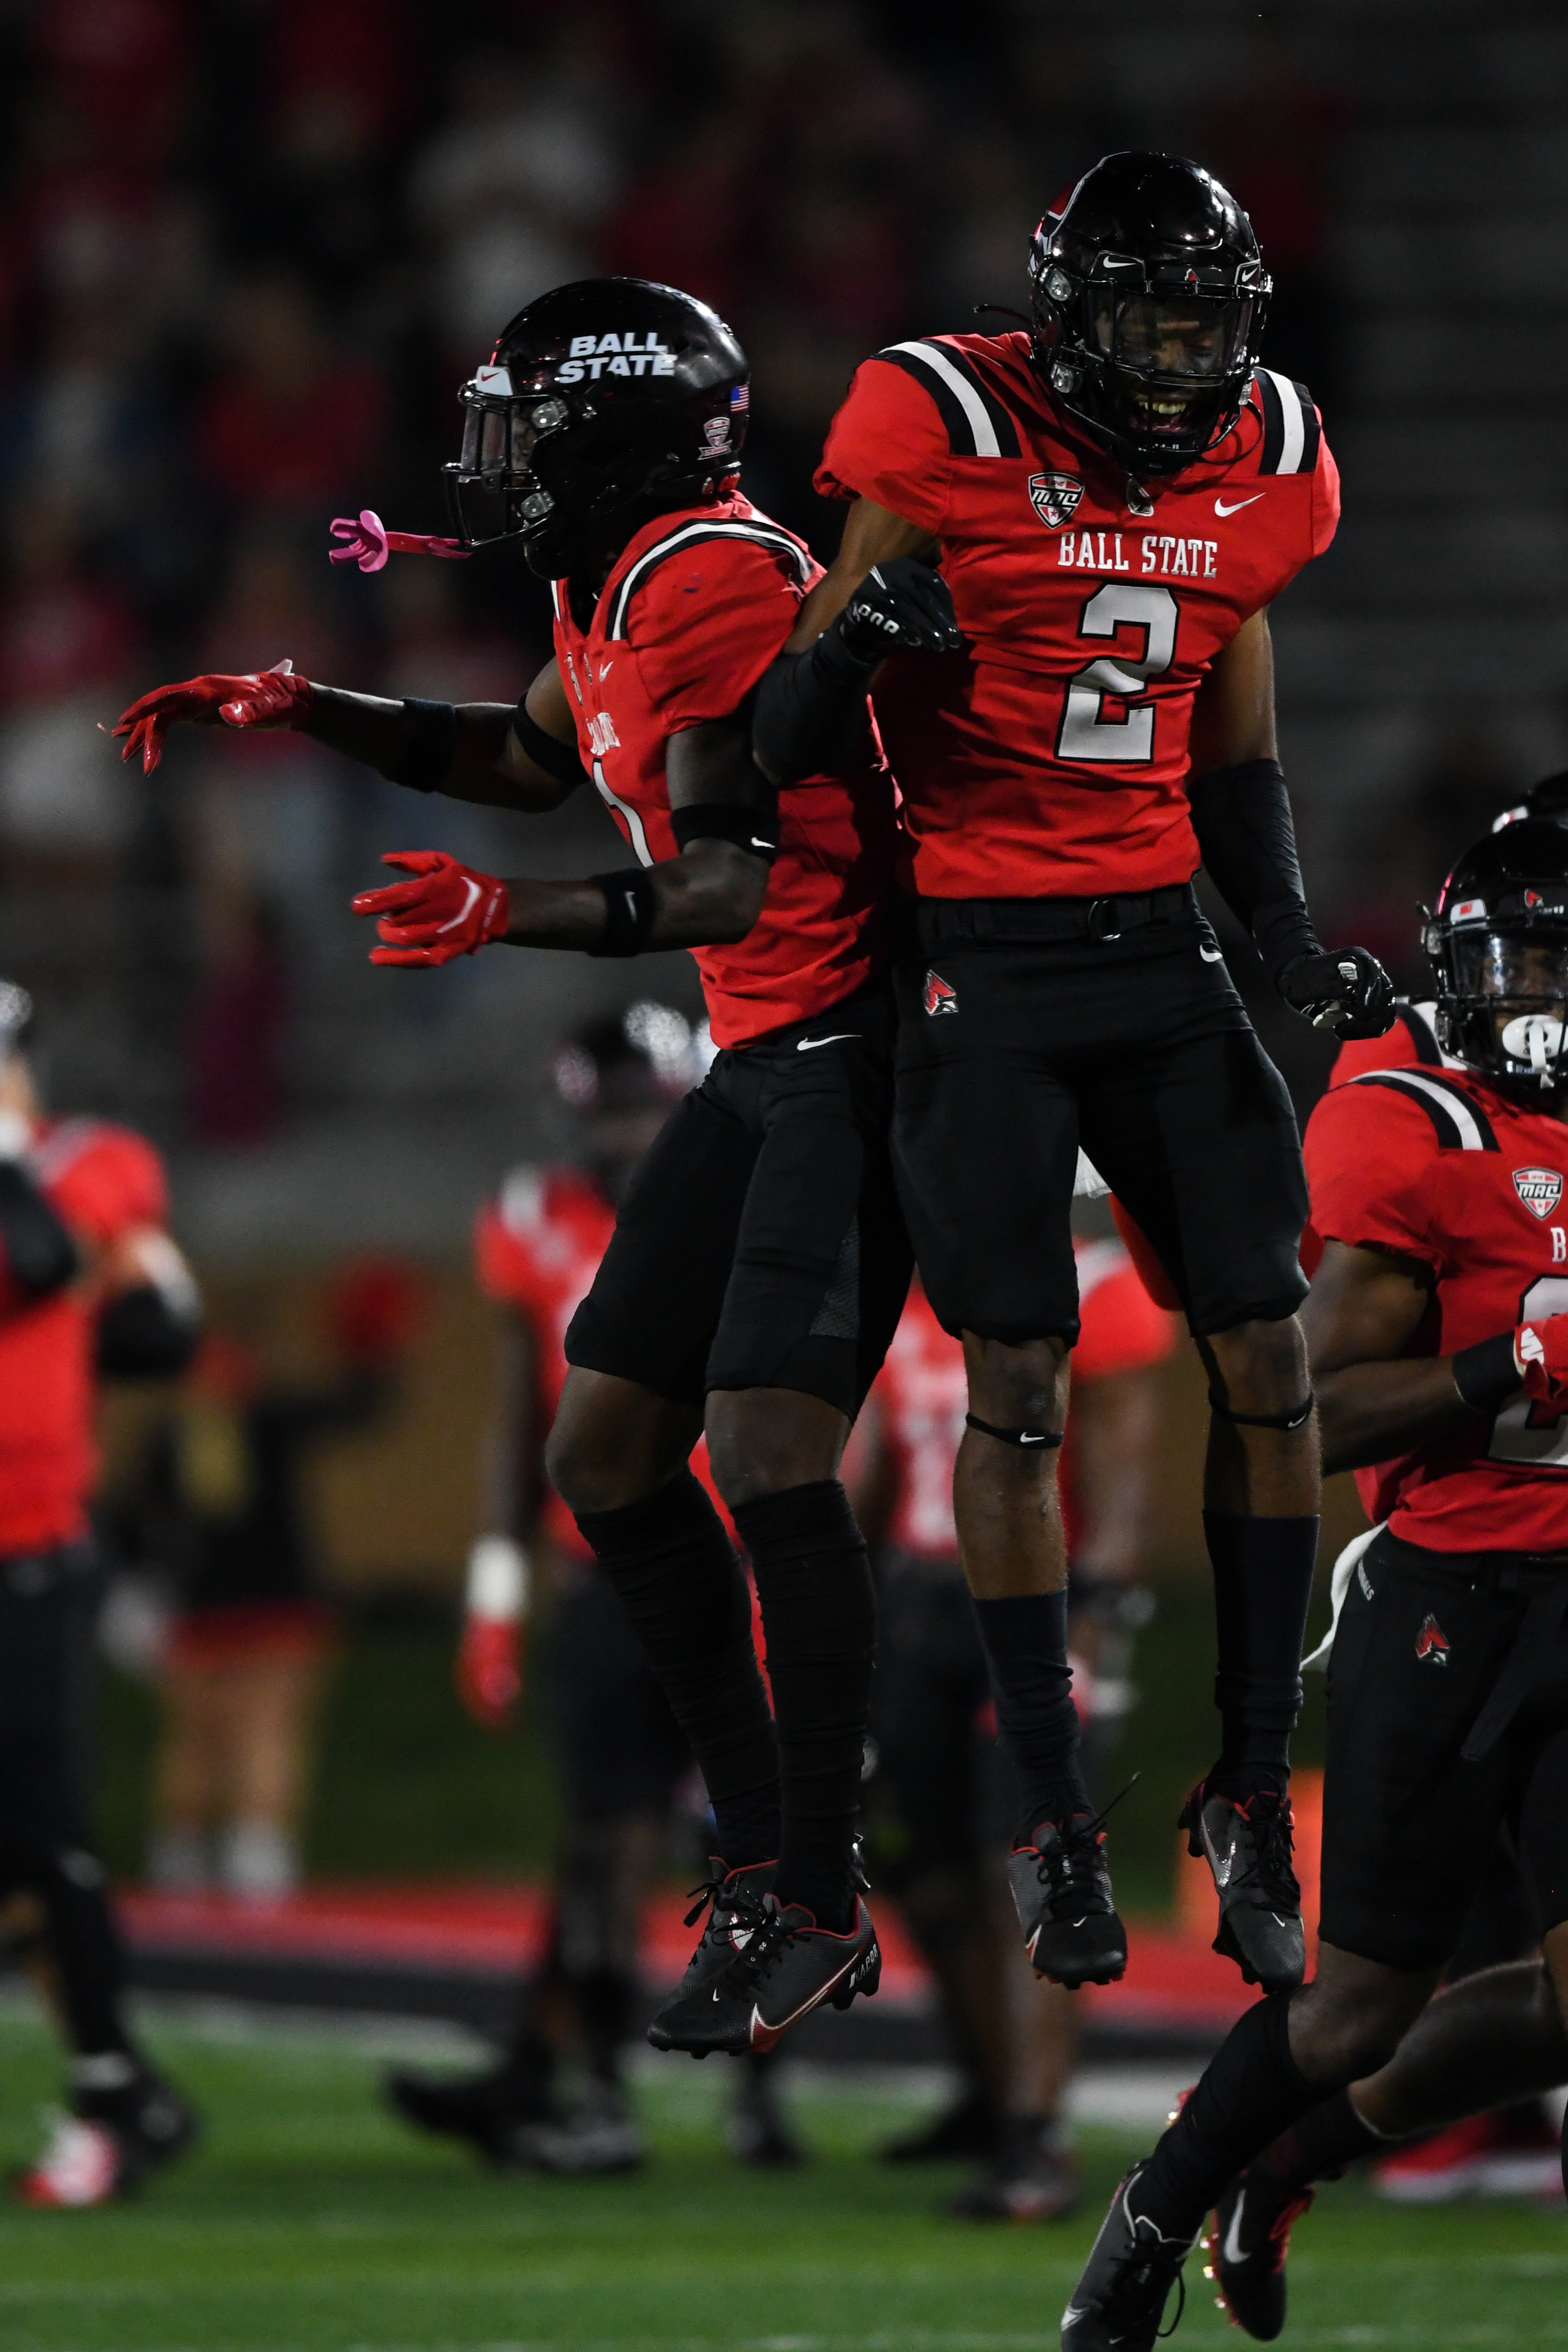 COLLEGE FOOTBALL: SEP 02 Western Illinois at Ball State